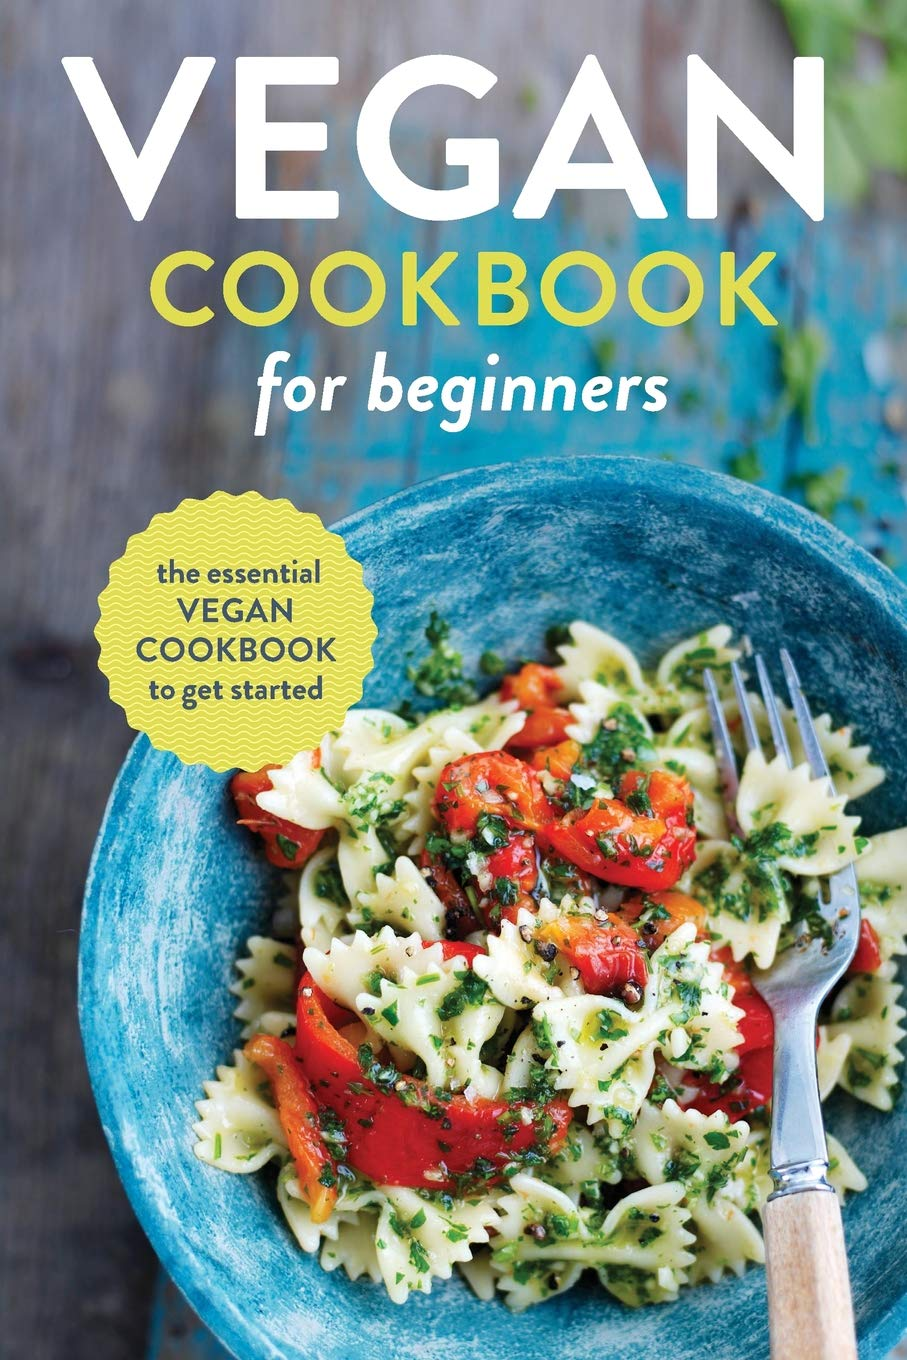 Vegan Cookbook for Beginners: The Essential Vegan Cookbook